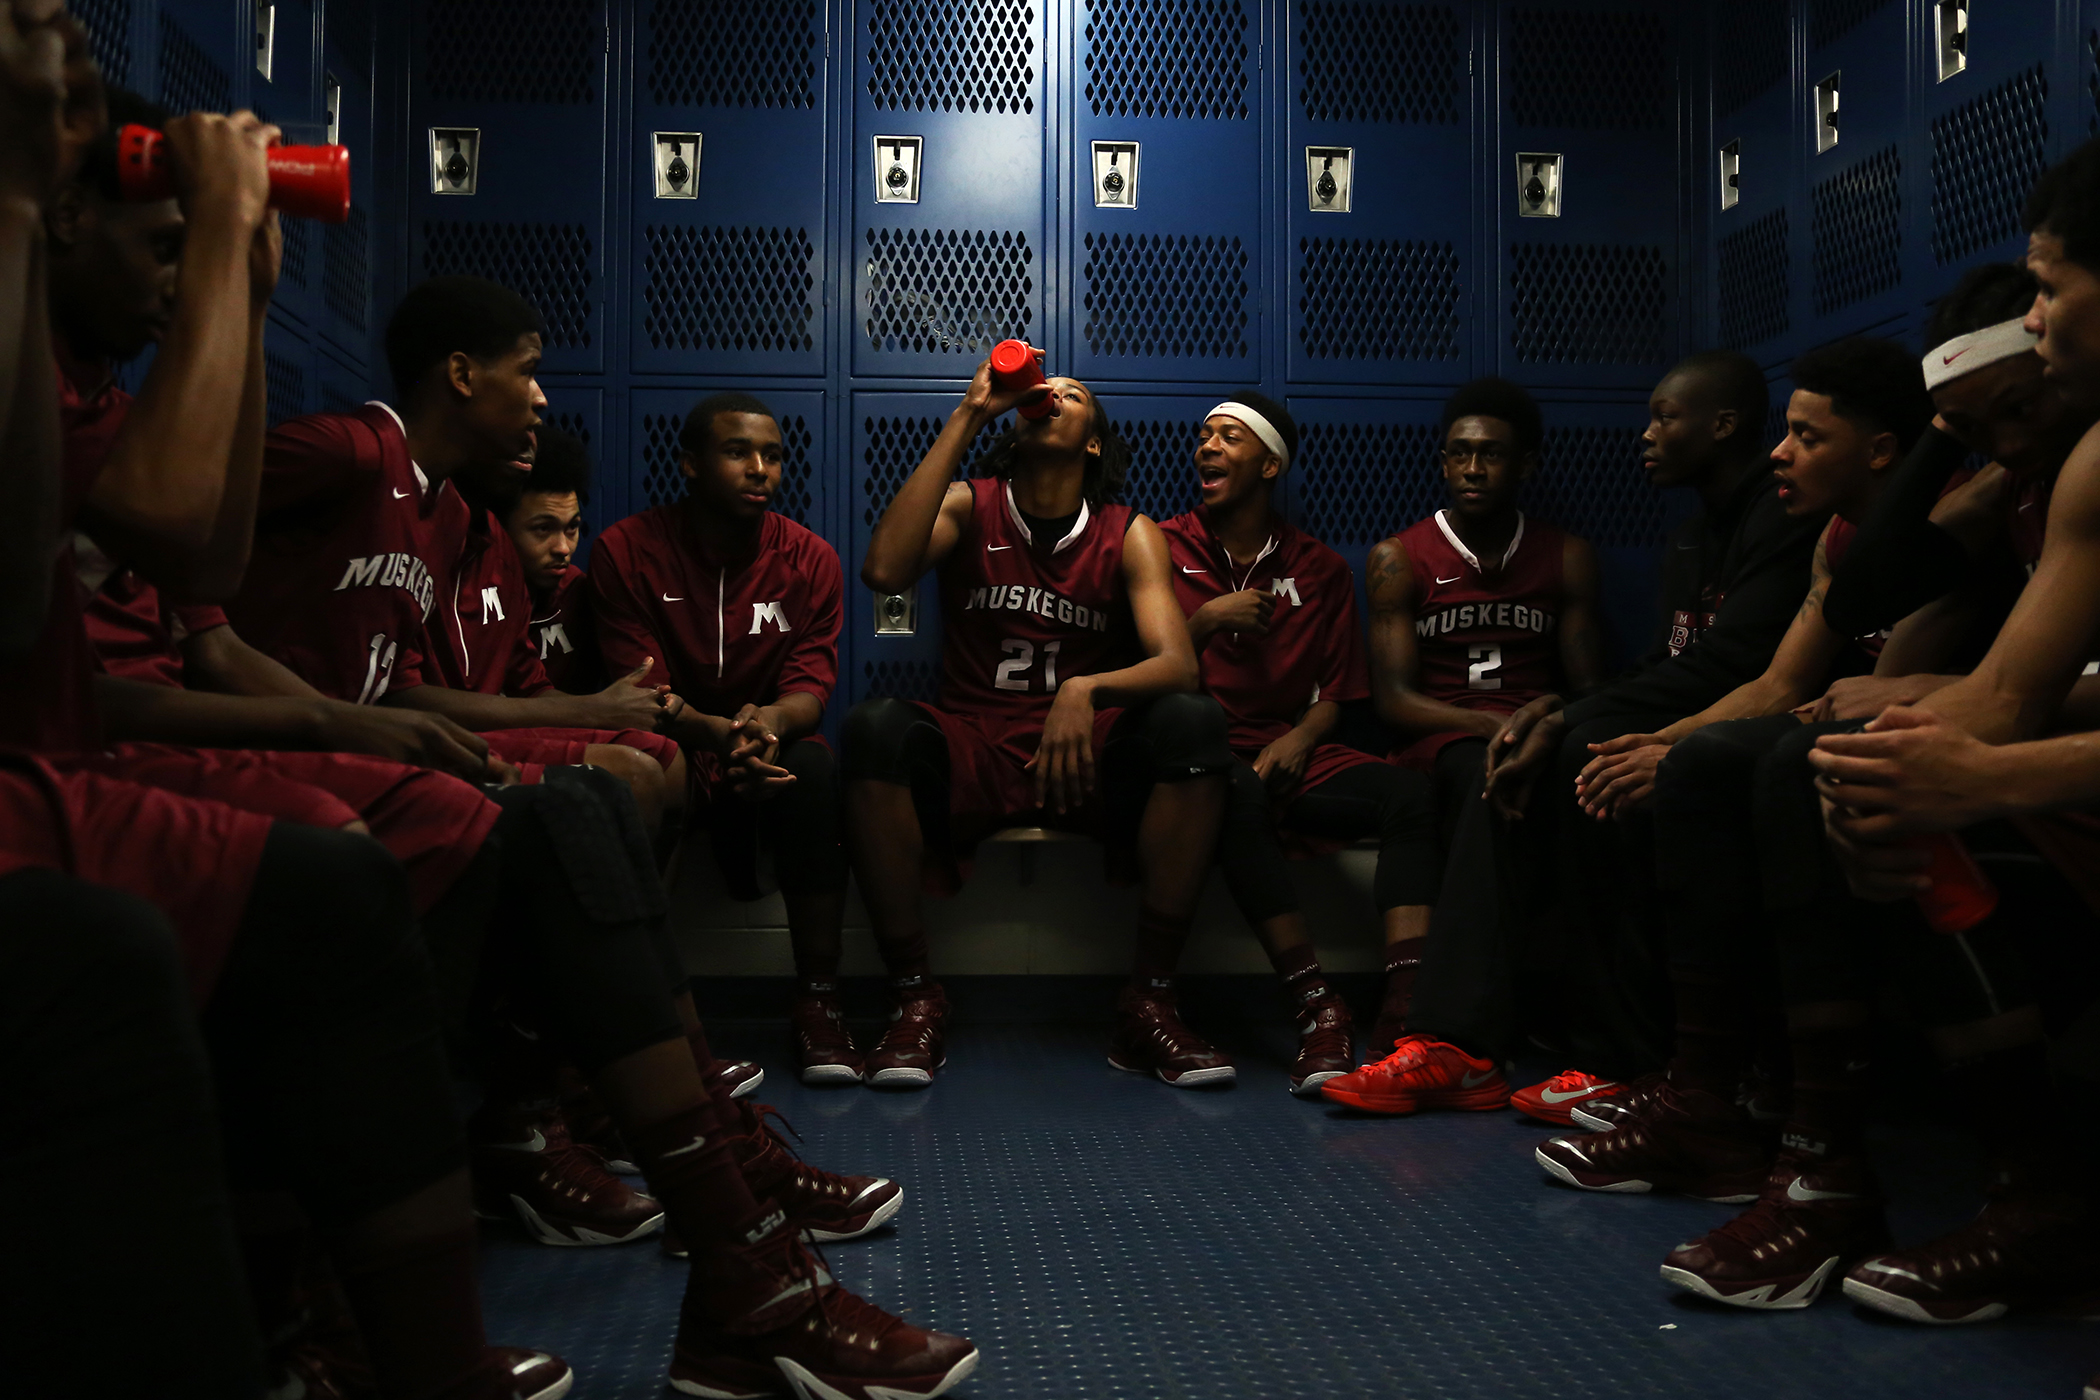 Deyonta Davis of Muskegon, center, hydrates himself surrounded by his team during halftime in the locker rooms at Mona Shores High School Friday, Jan. 16, 2015.